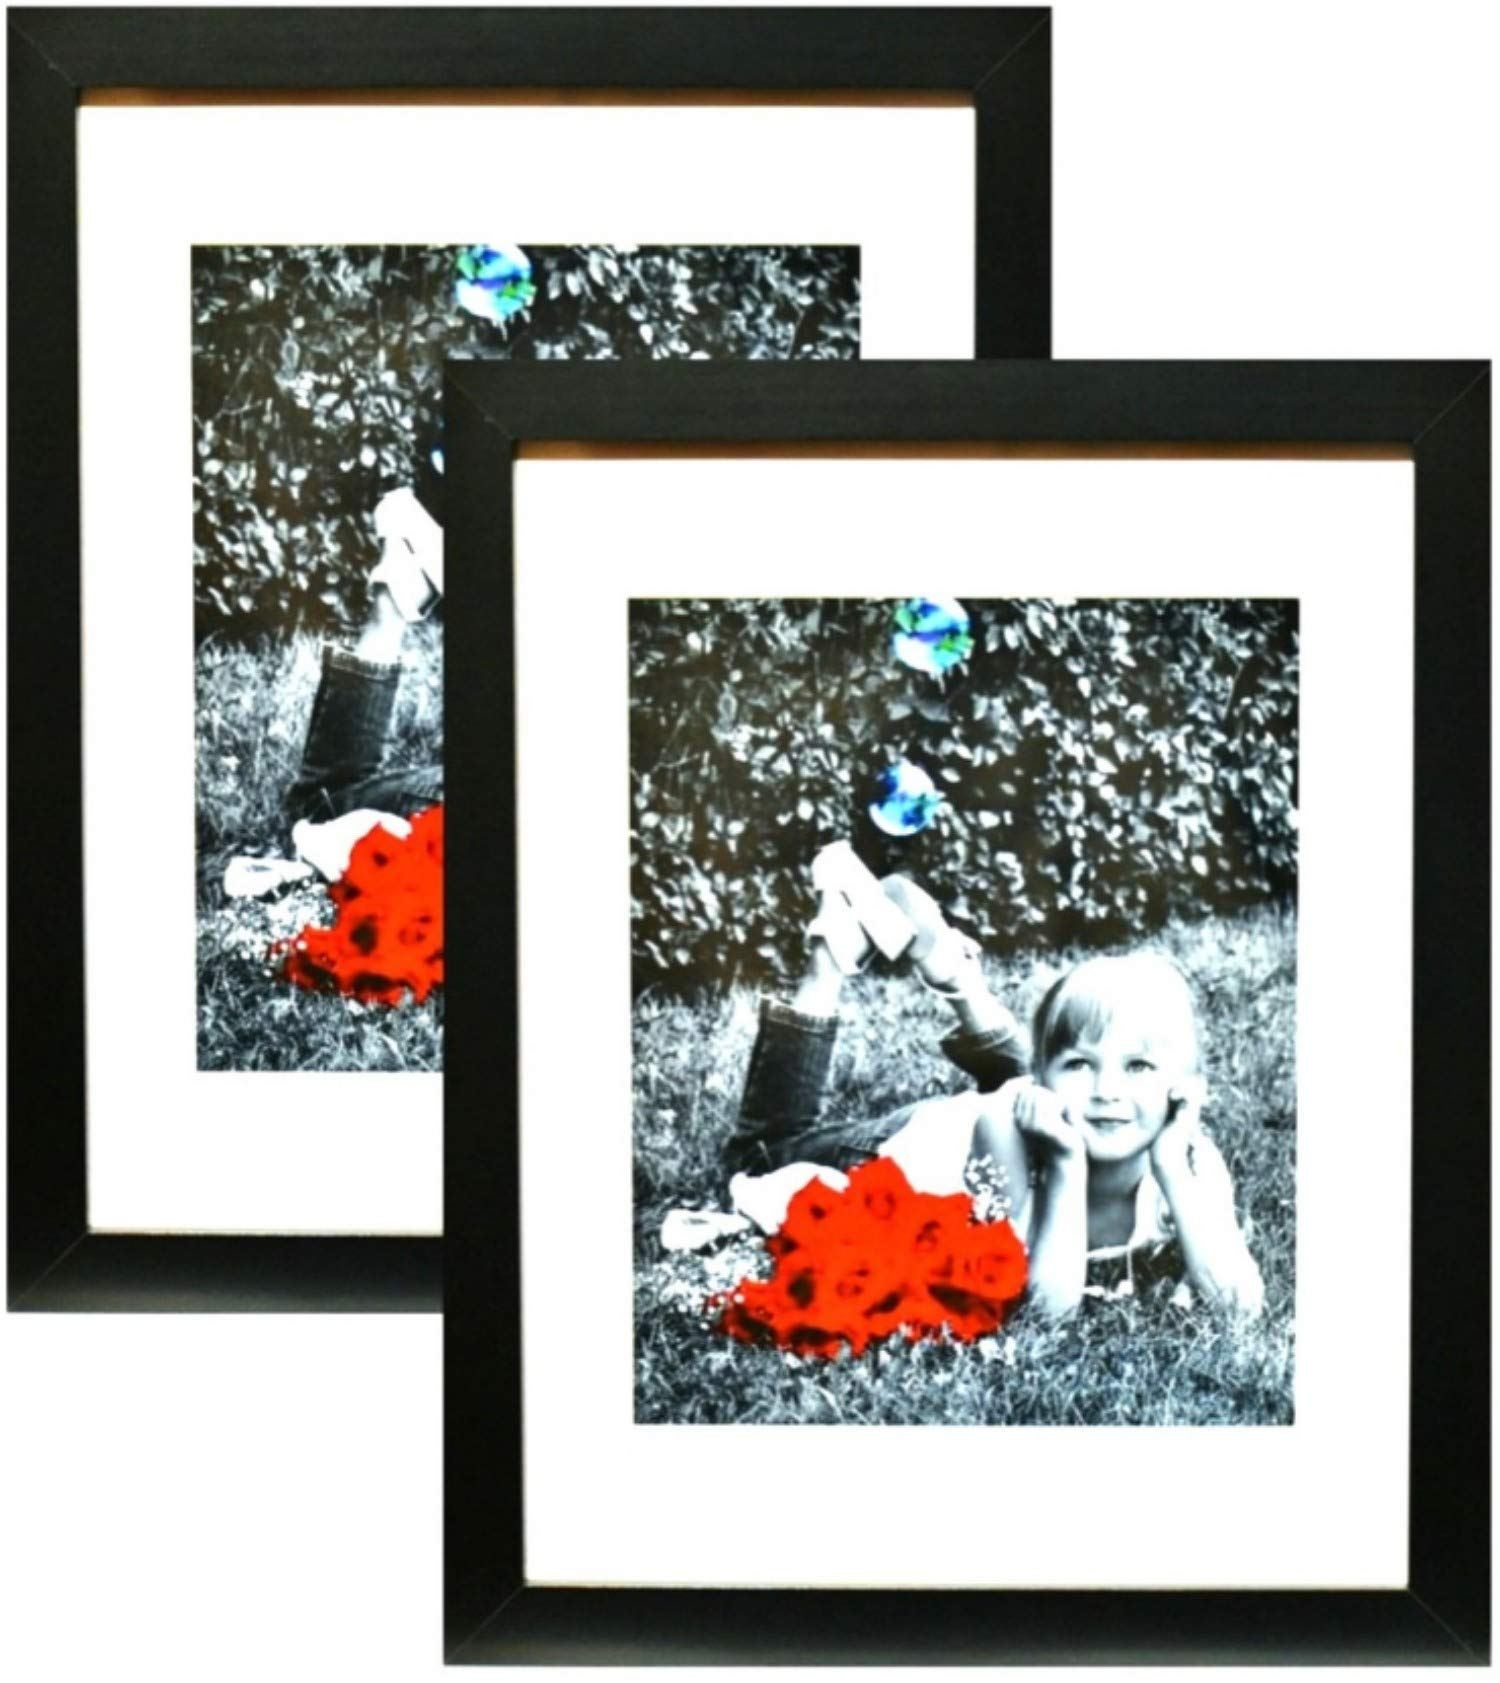 11x14 Inch Picture Frame Black (2-pack) - HIGH DEFINITION GLASS FRONT COVER - Displays 11 by 14'' Picture w/o Mat or an 8x10 Photo w/ Mat - Vertical or Horizontal Mounts & Comes Ready To Hang by Tasse Verre